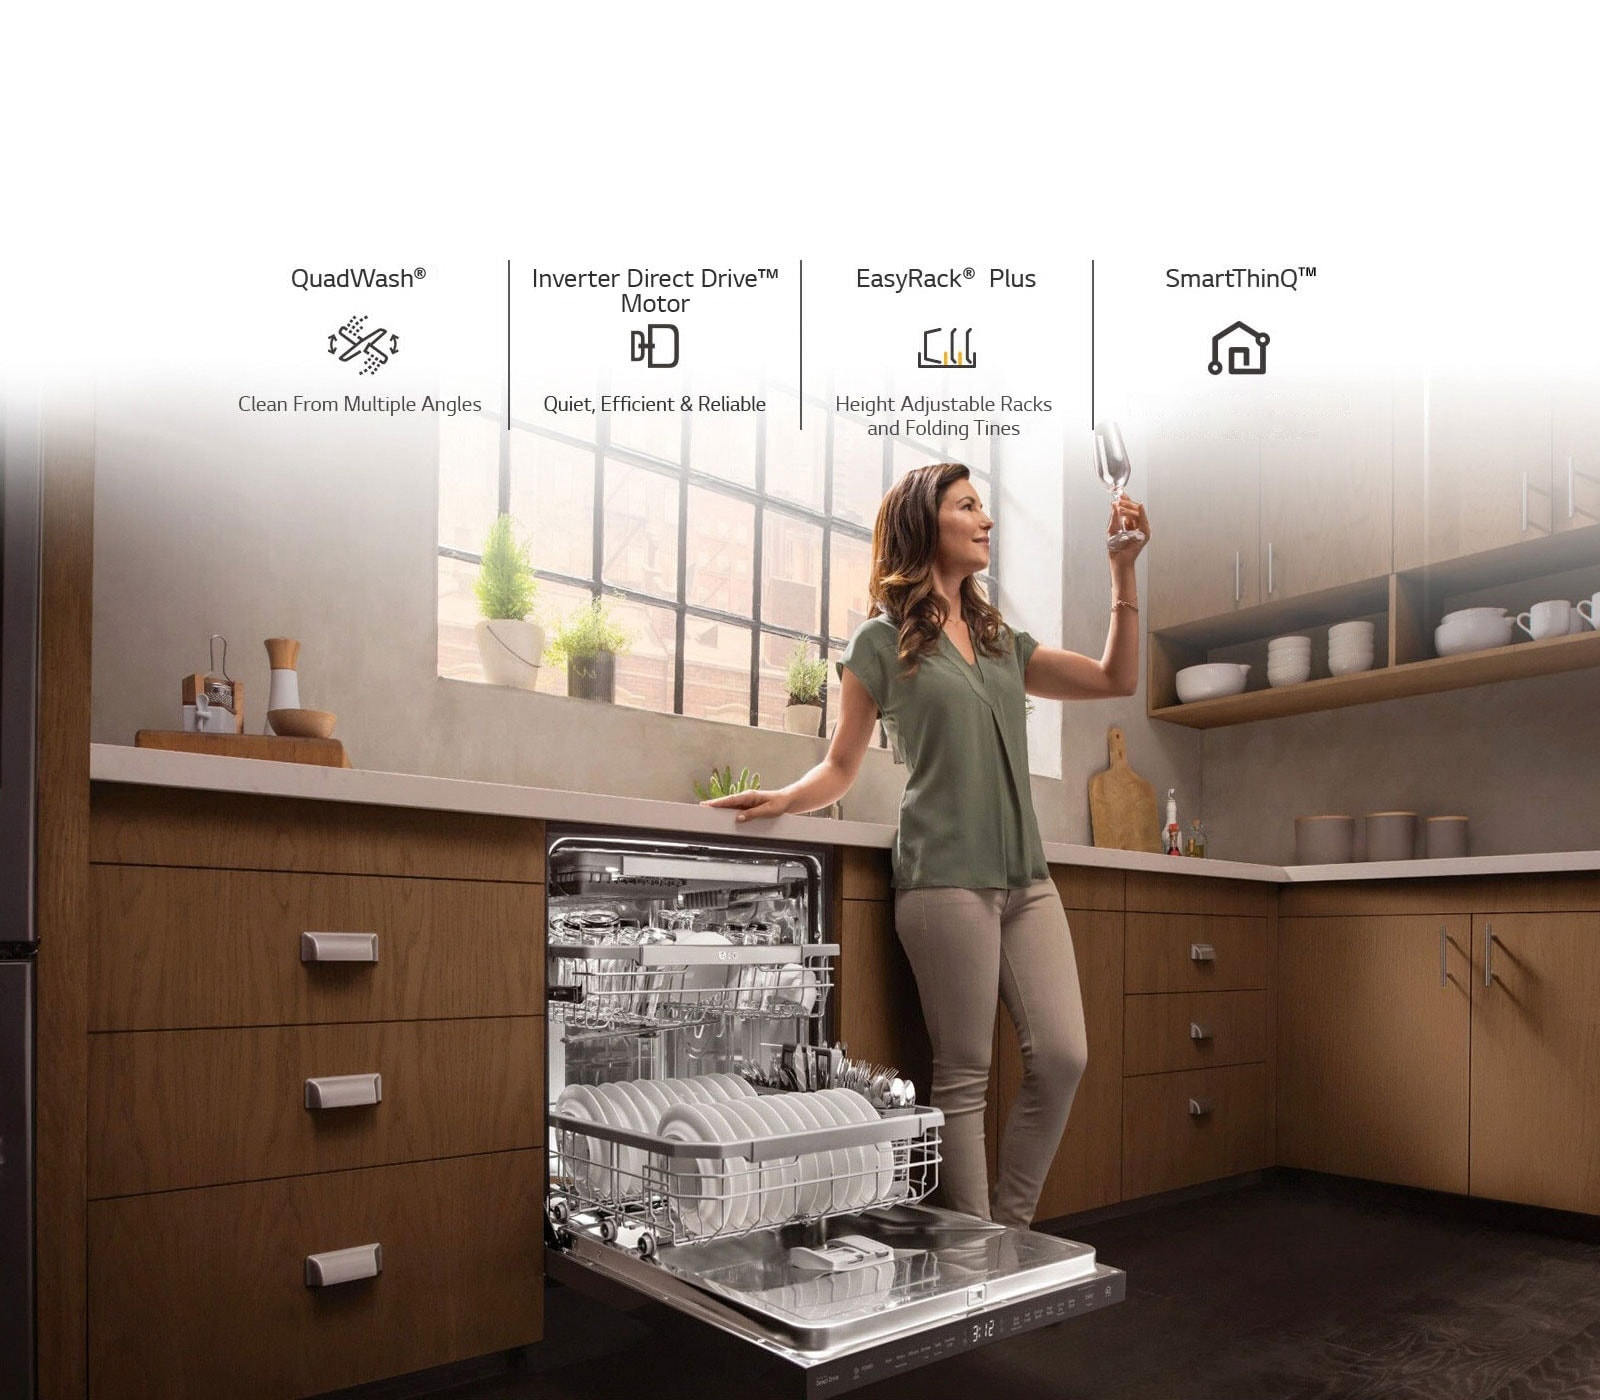 Four Reasons to Buy an LG QuadWash® Dishwasher1